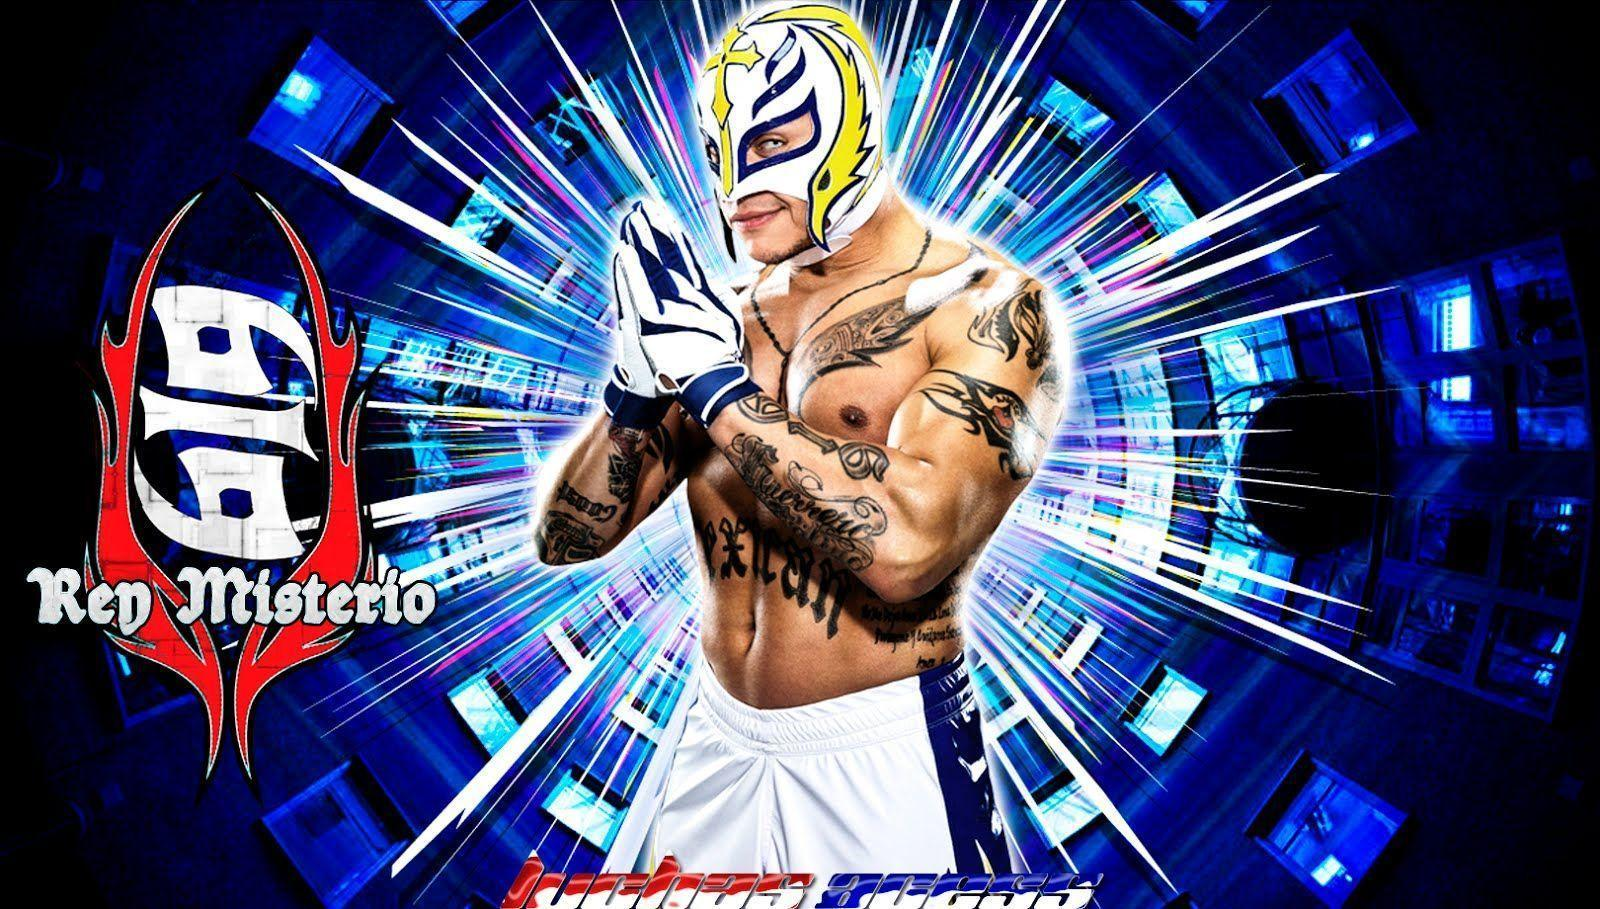 rey mysterio backgrounds wallpaper cave